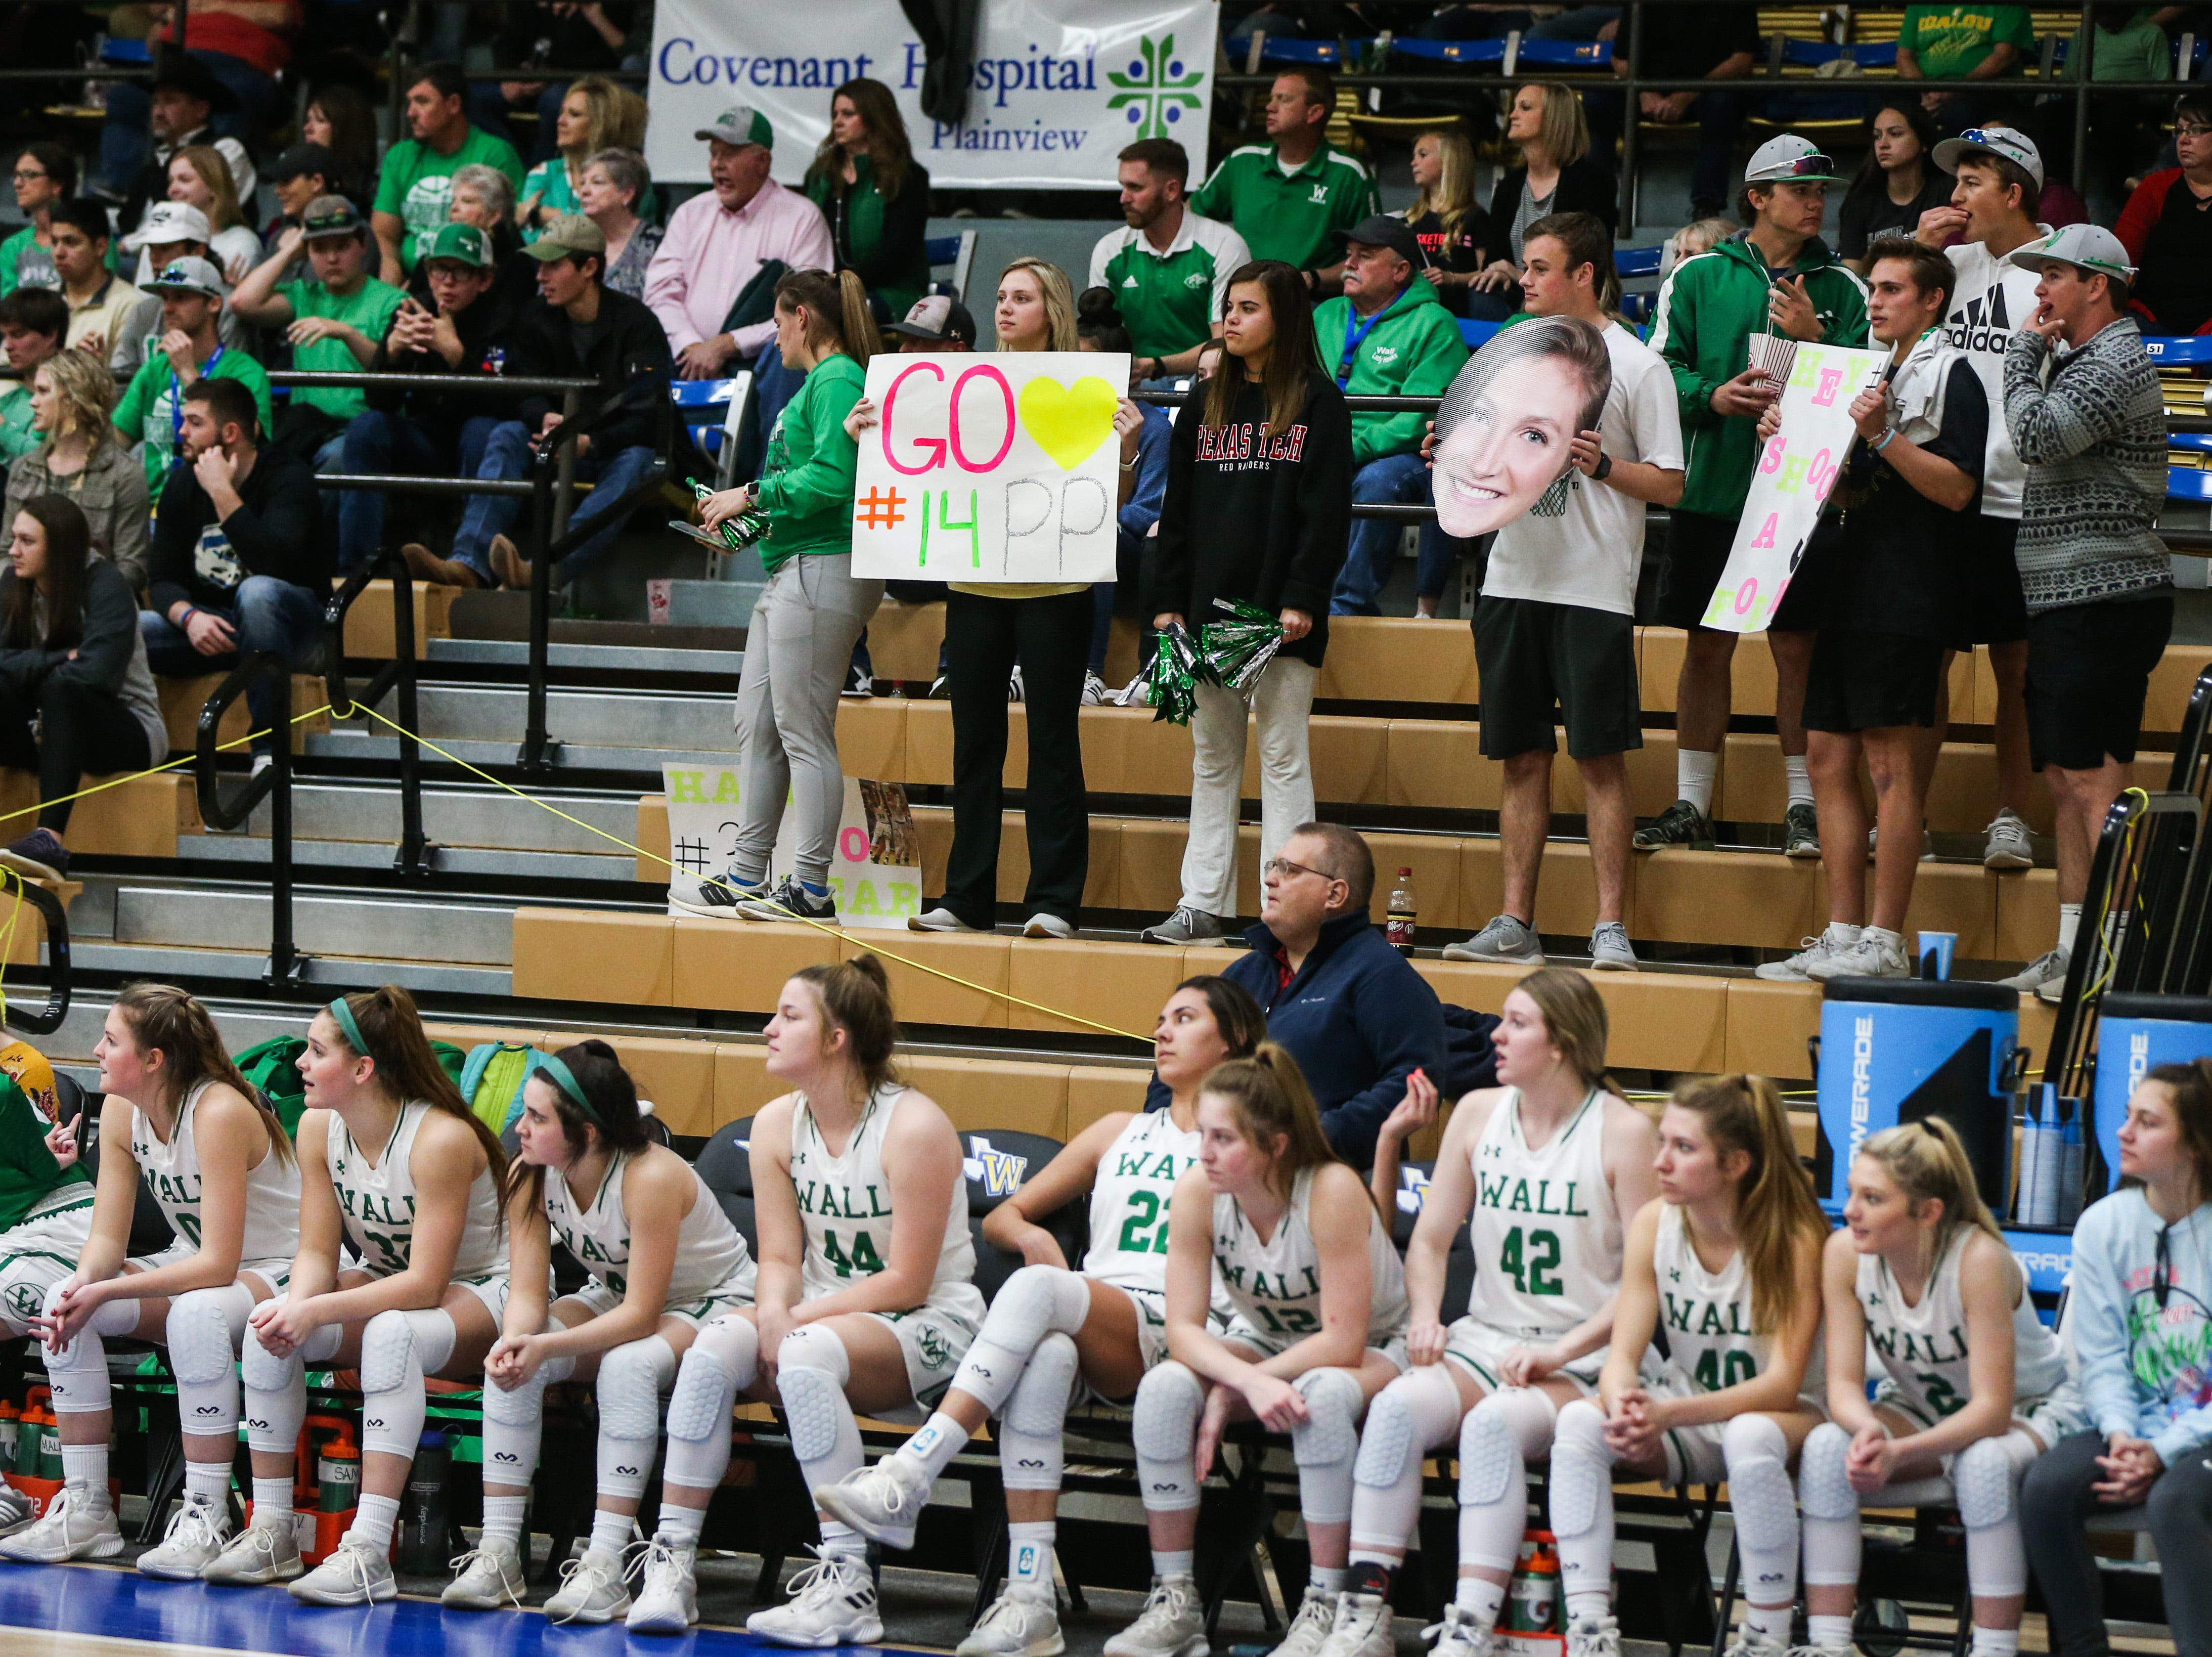 Wall fans hold up signs for their team during the 1-3A regional tournament against Brock Friday, Feb. 22, 2019, at Wayland Baptist University in Plainview.